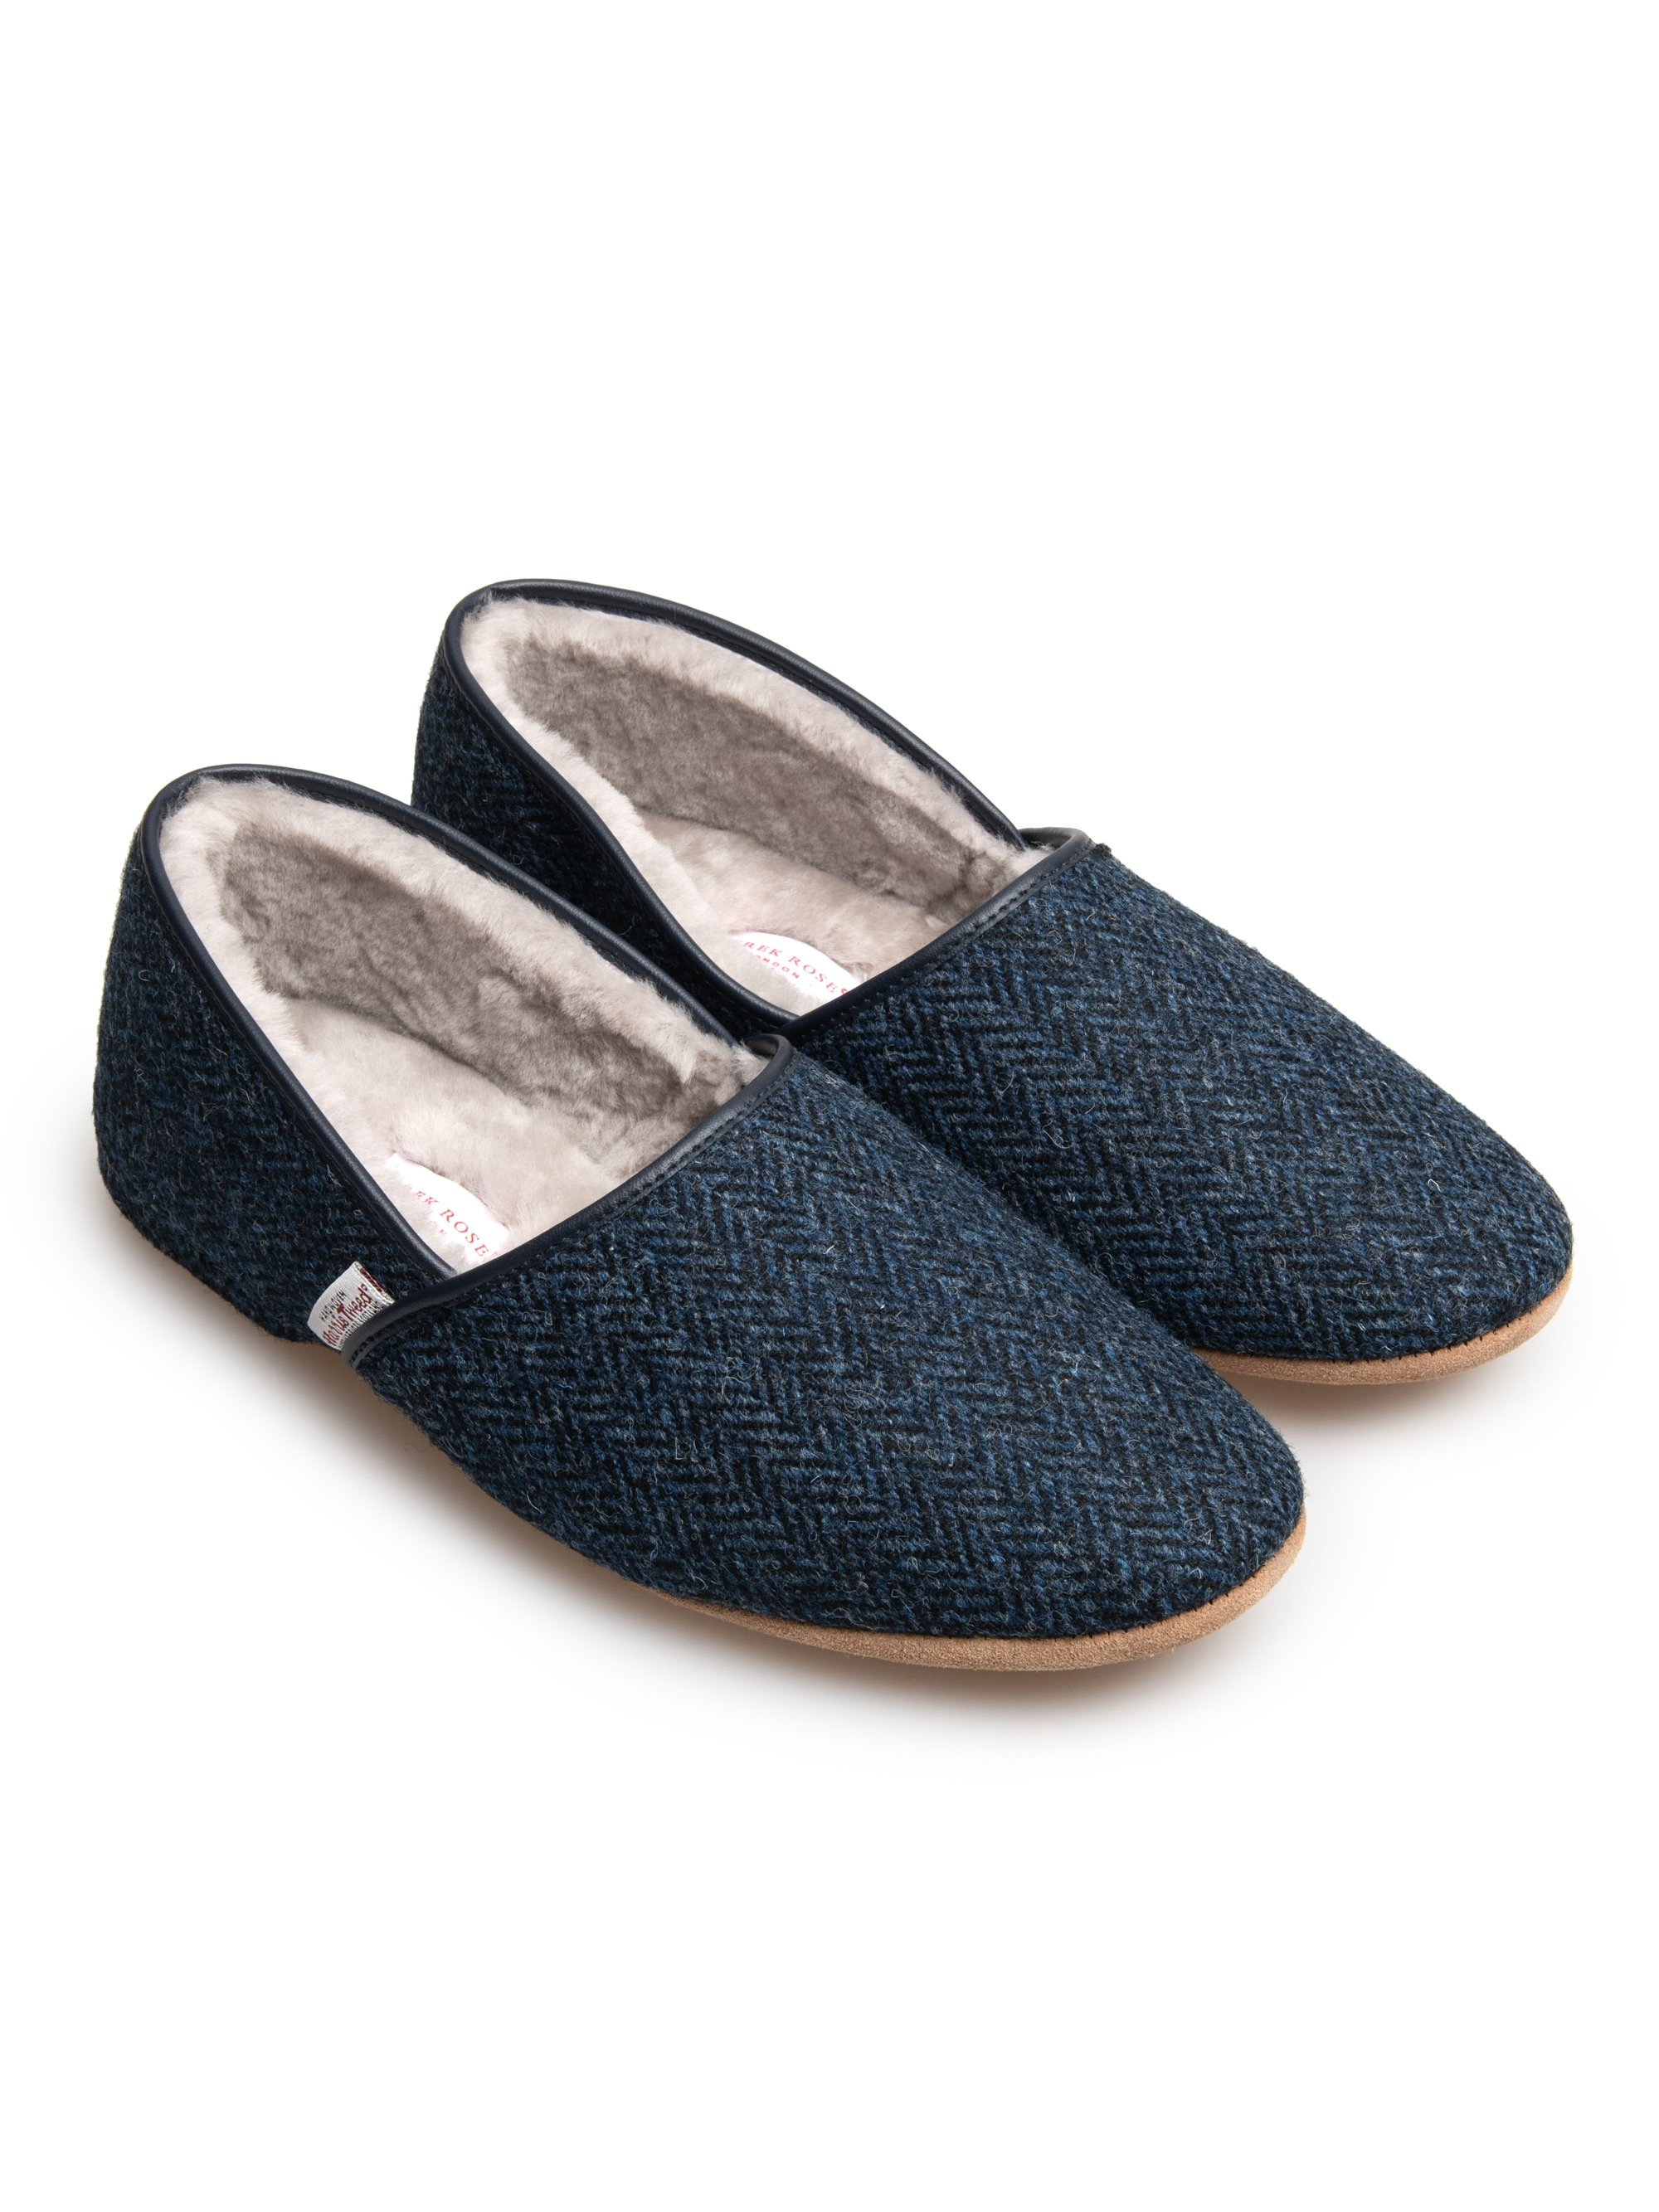 Men's Closed-Back Slipper Crawford 2 Harris Tweed Sheepskin Navy